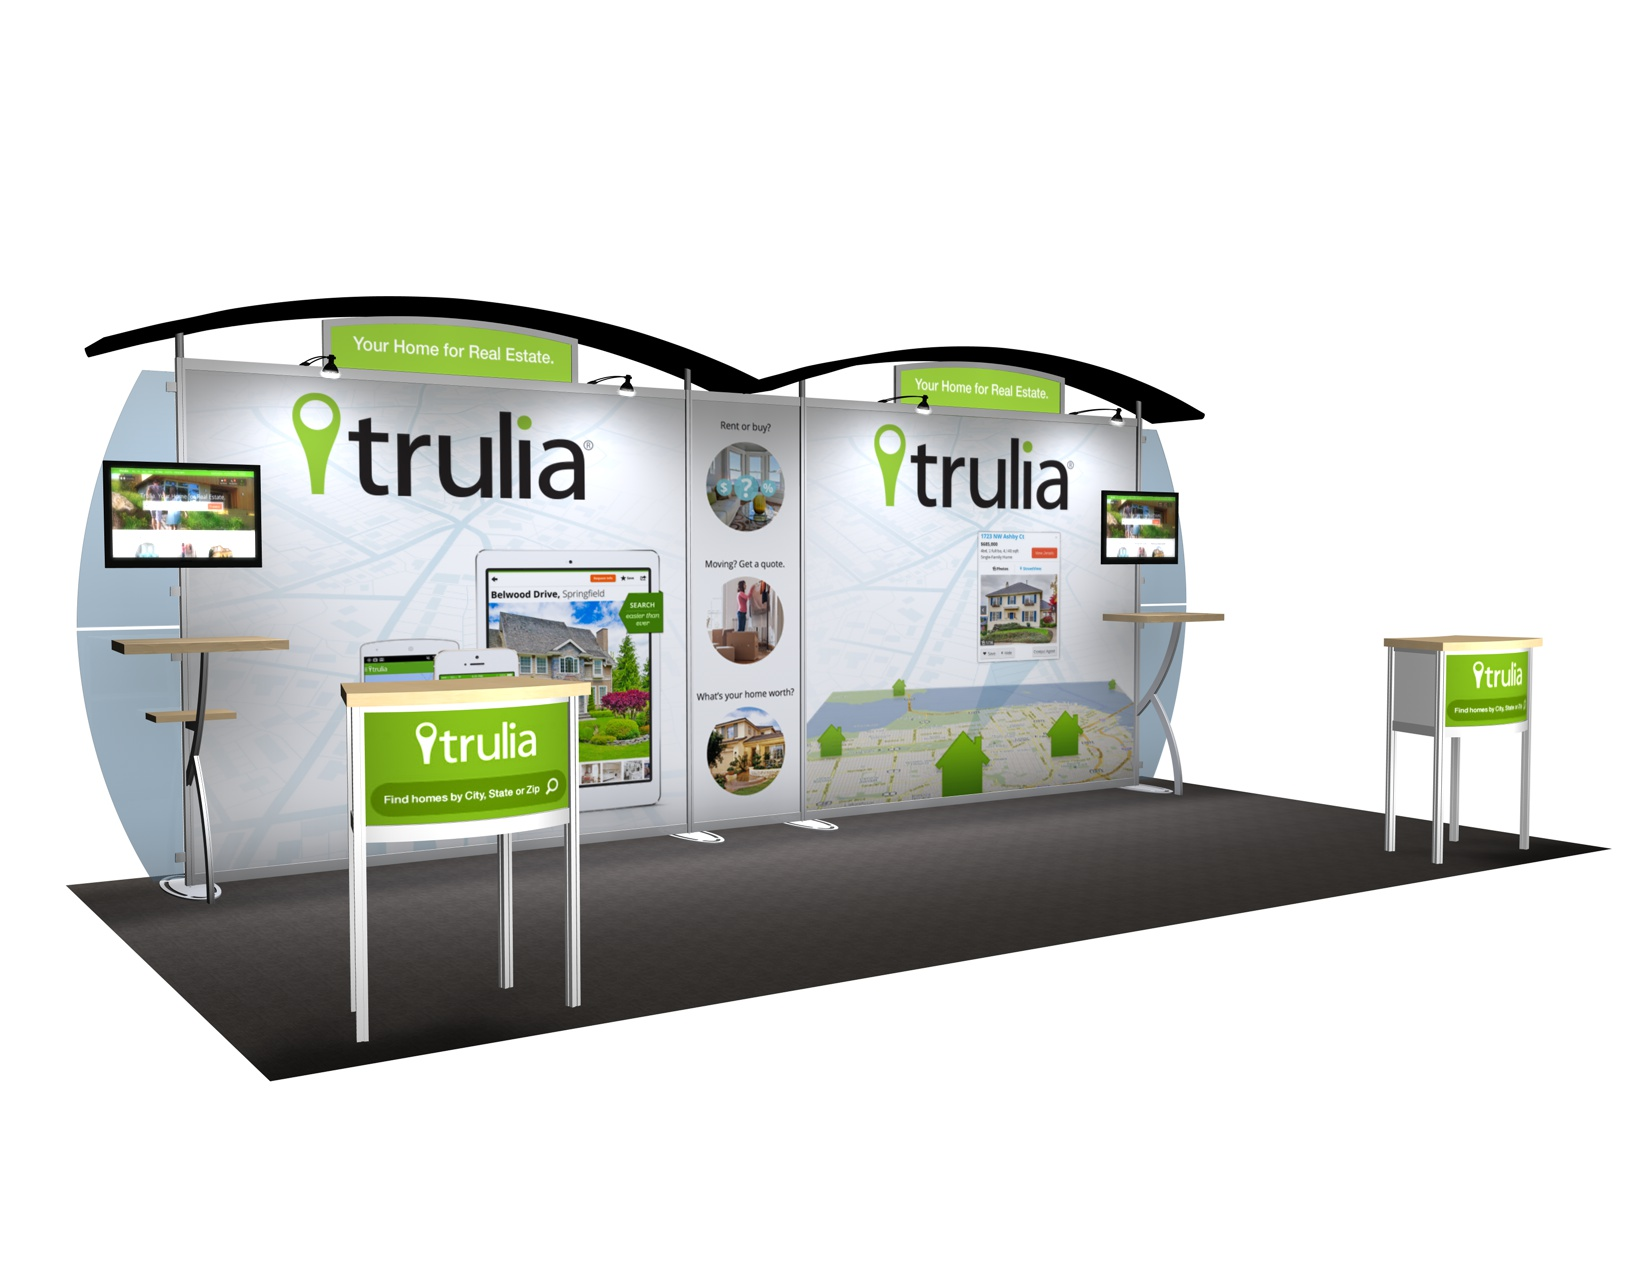 Trade Show Booth Visitors : Exhibit design search vk sacagawea ft